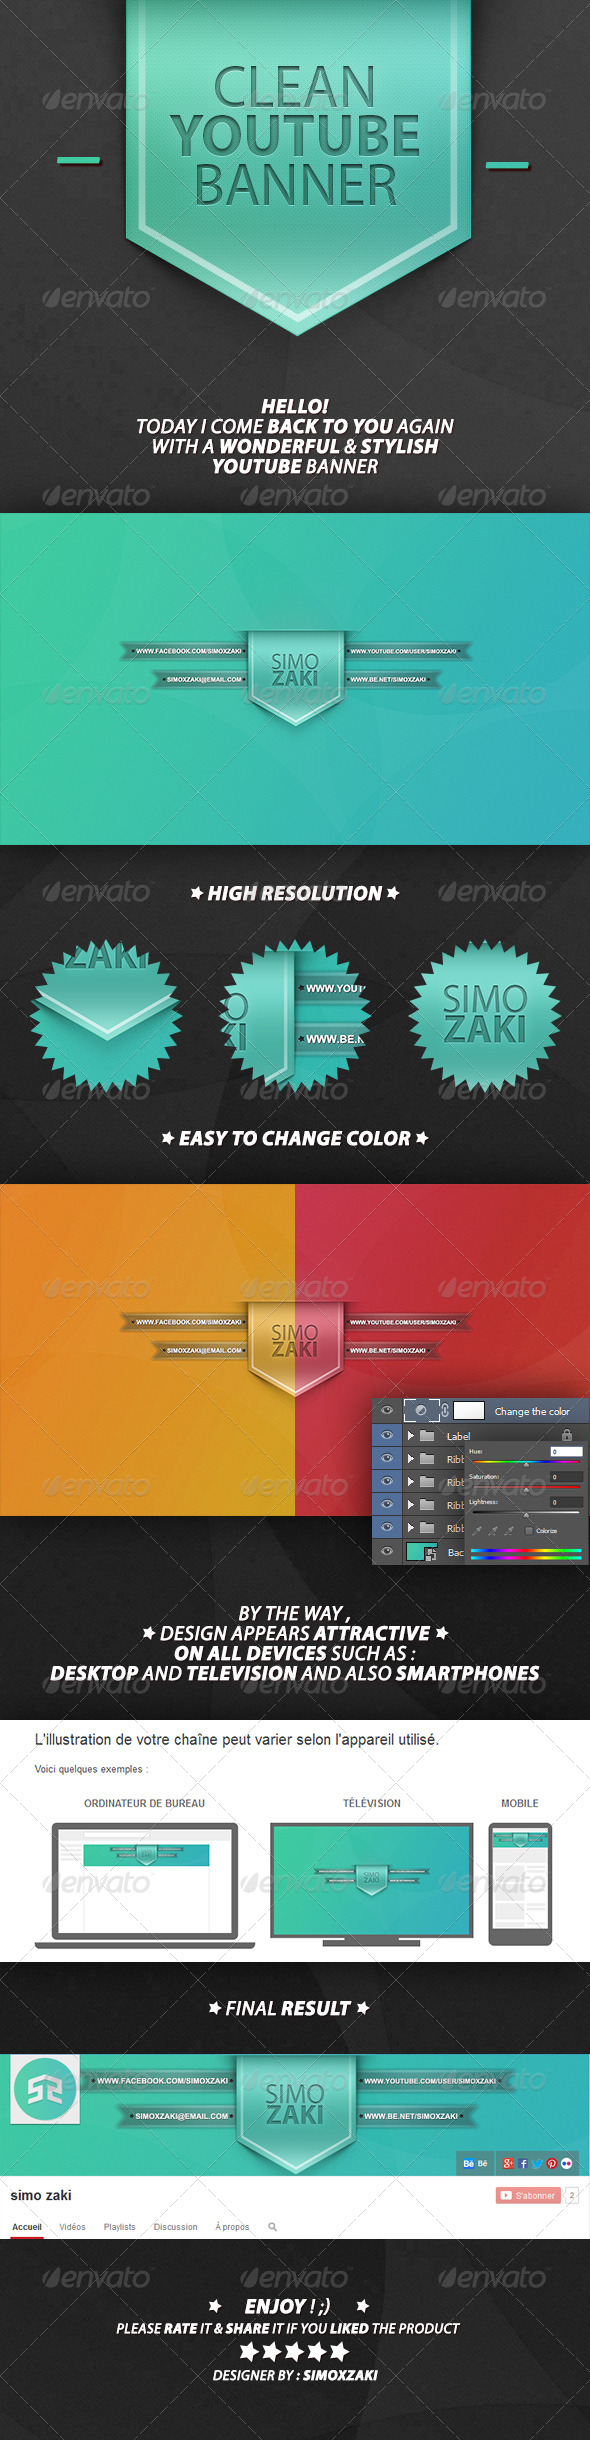 GraphicRiver Clean youtube banner 7263132